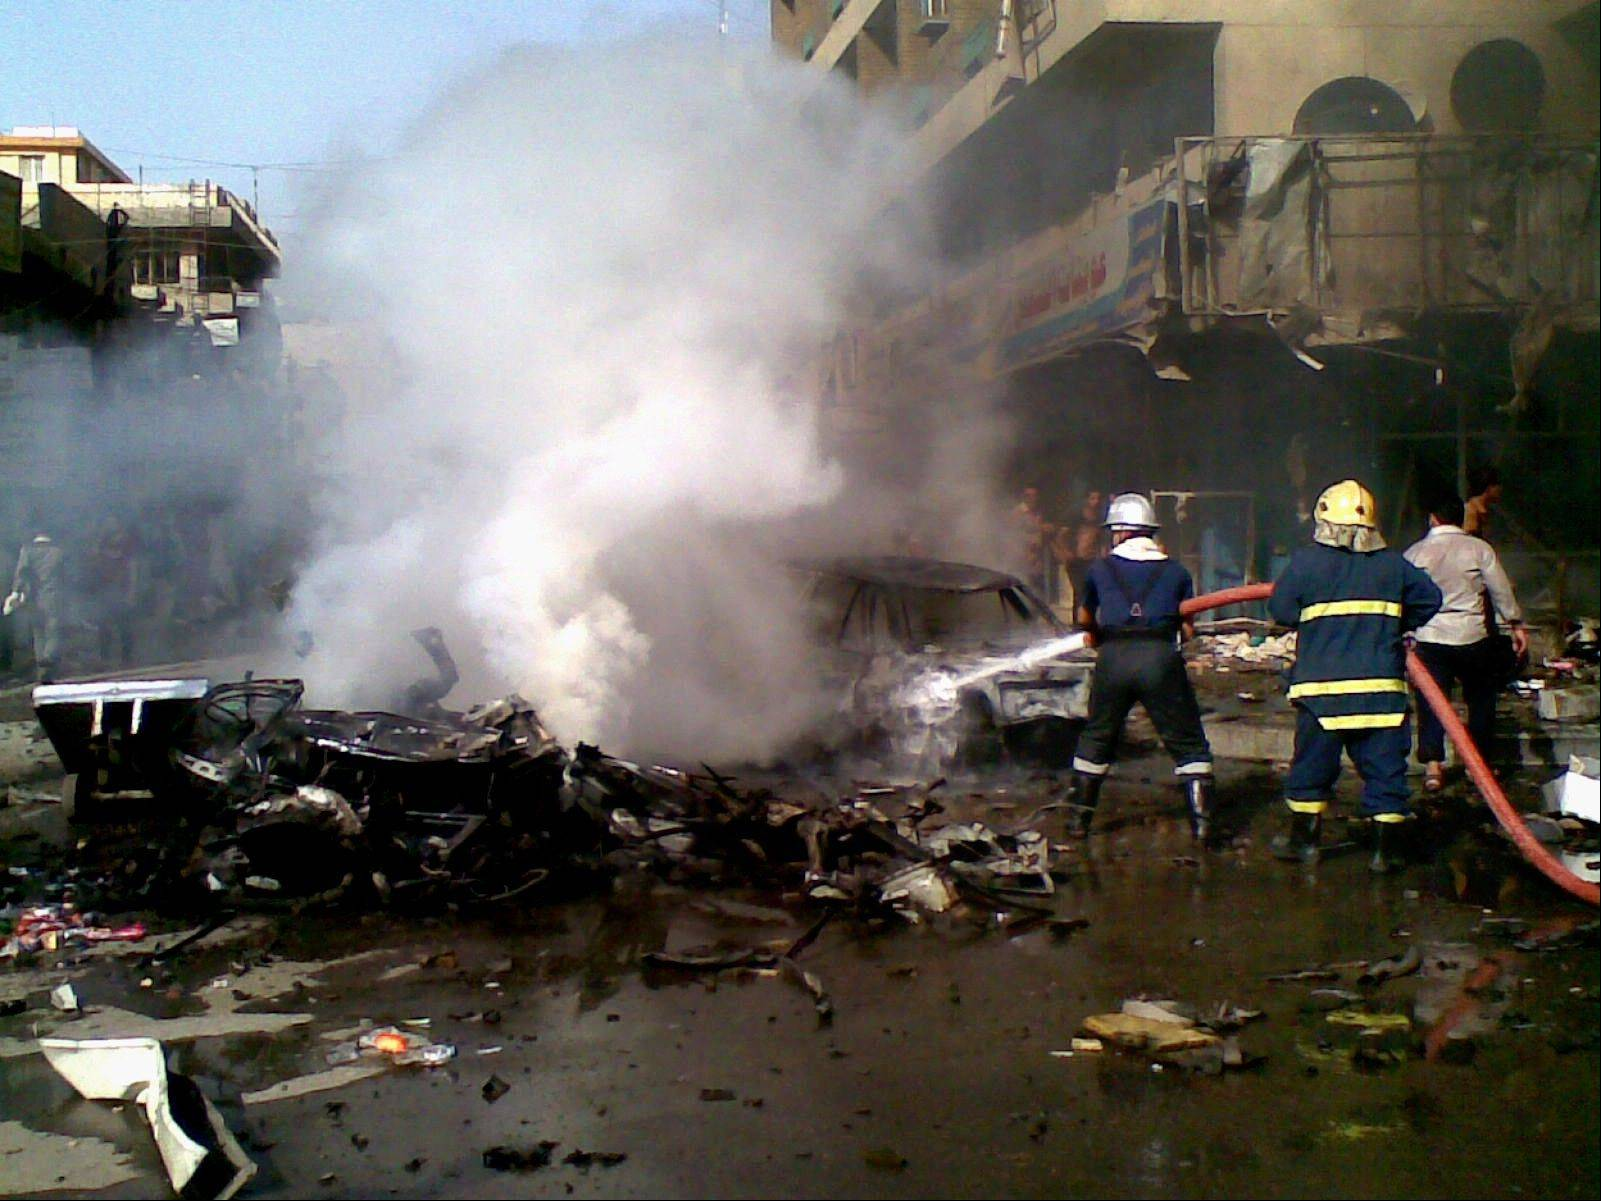 Iraqi firefighters distinguish a fire at the scene of a car bomb attack in Baghdad, Iraq, Monday, May 27, 2013. A parked car bomb explosion in the busy commercial Sadoun Street in central Baghdad, killed and wounded scores of people, police said.